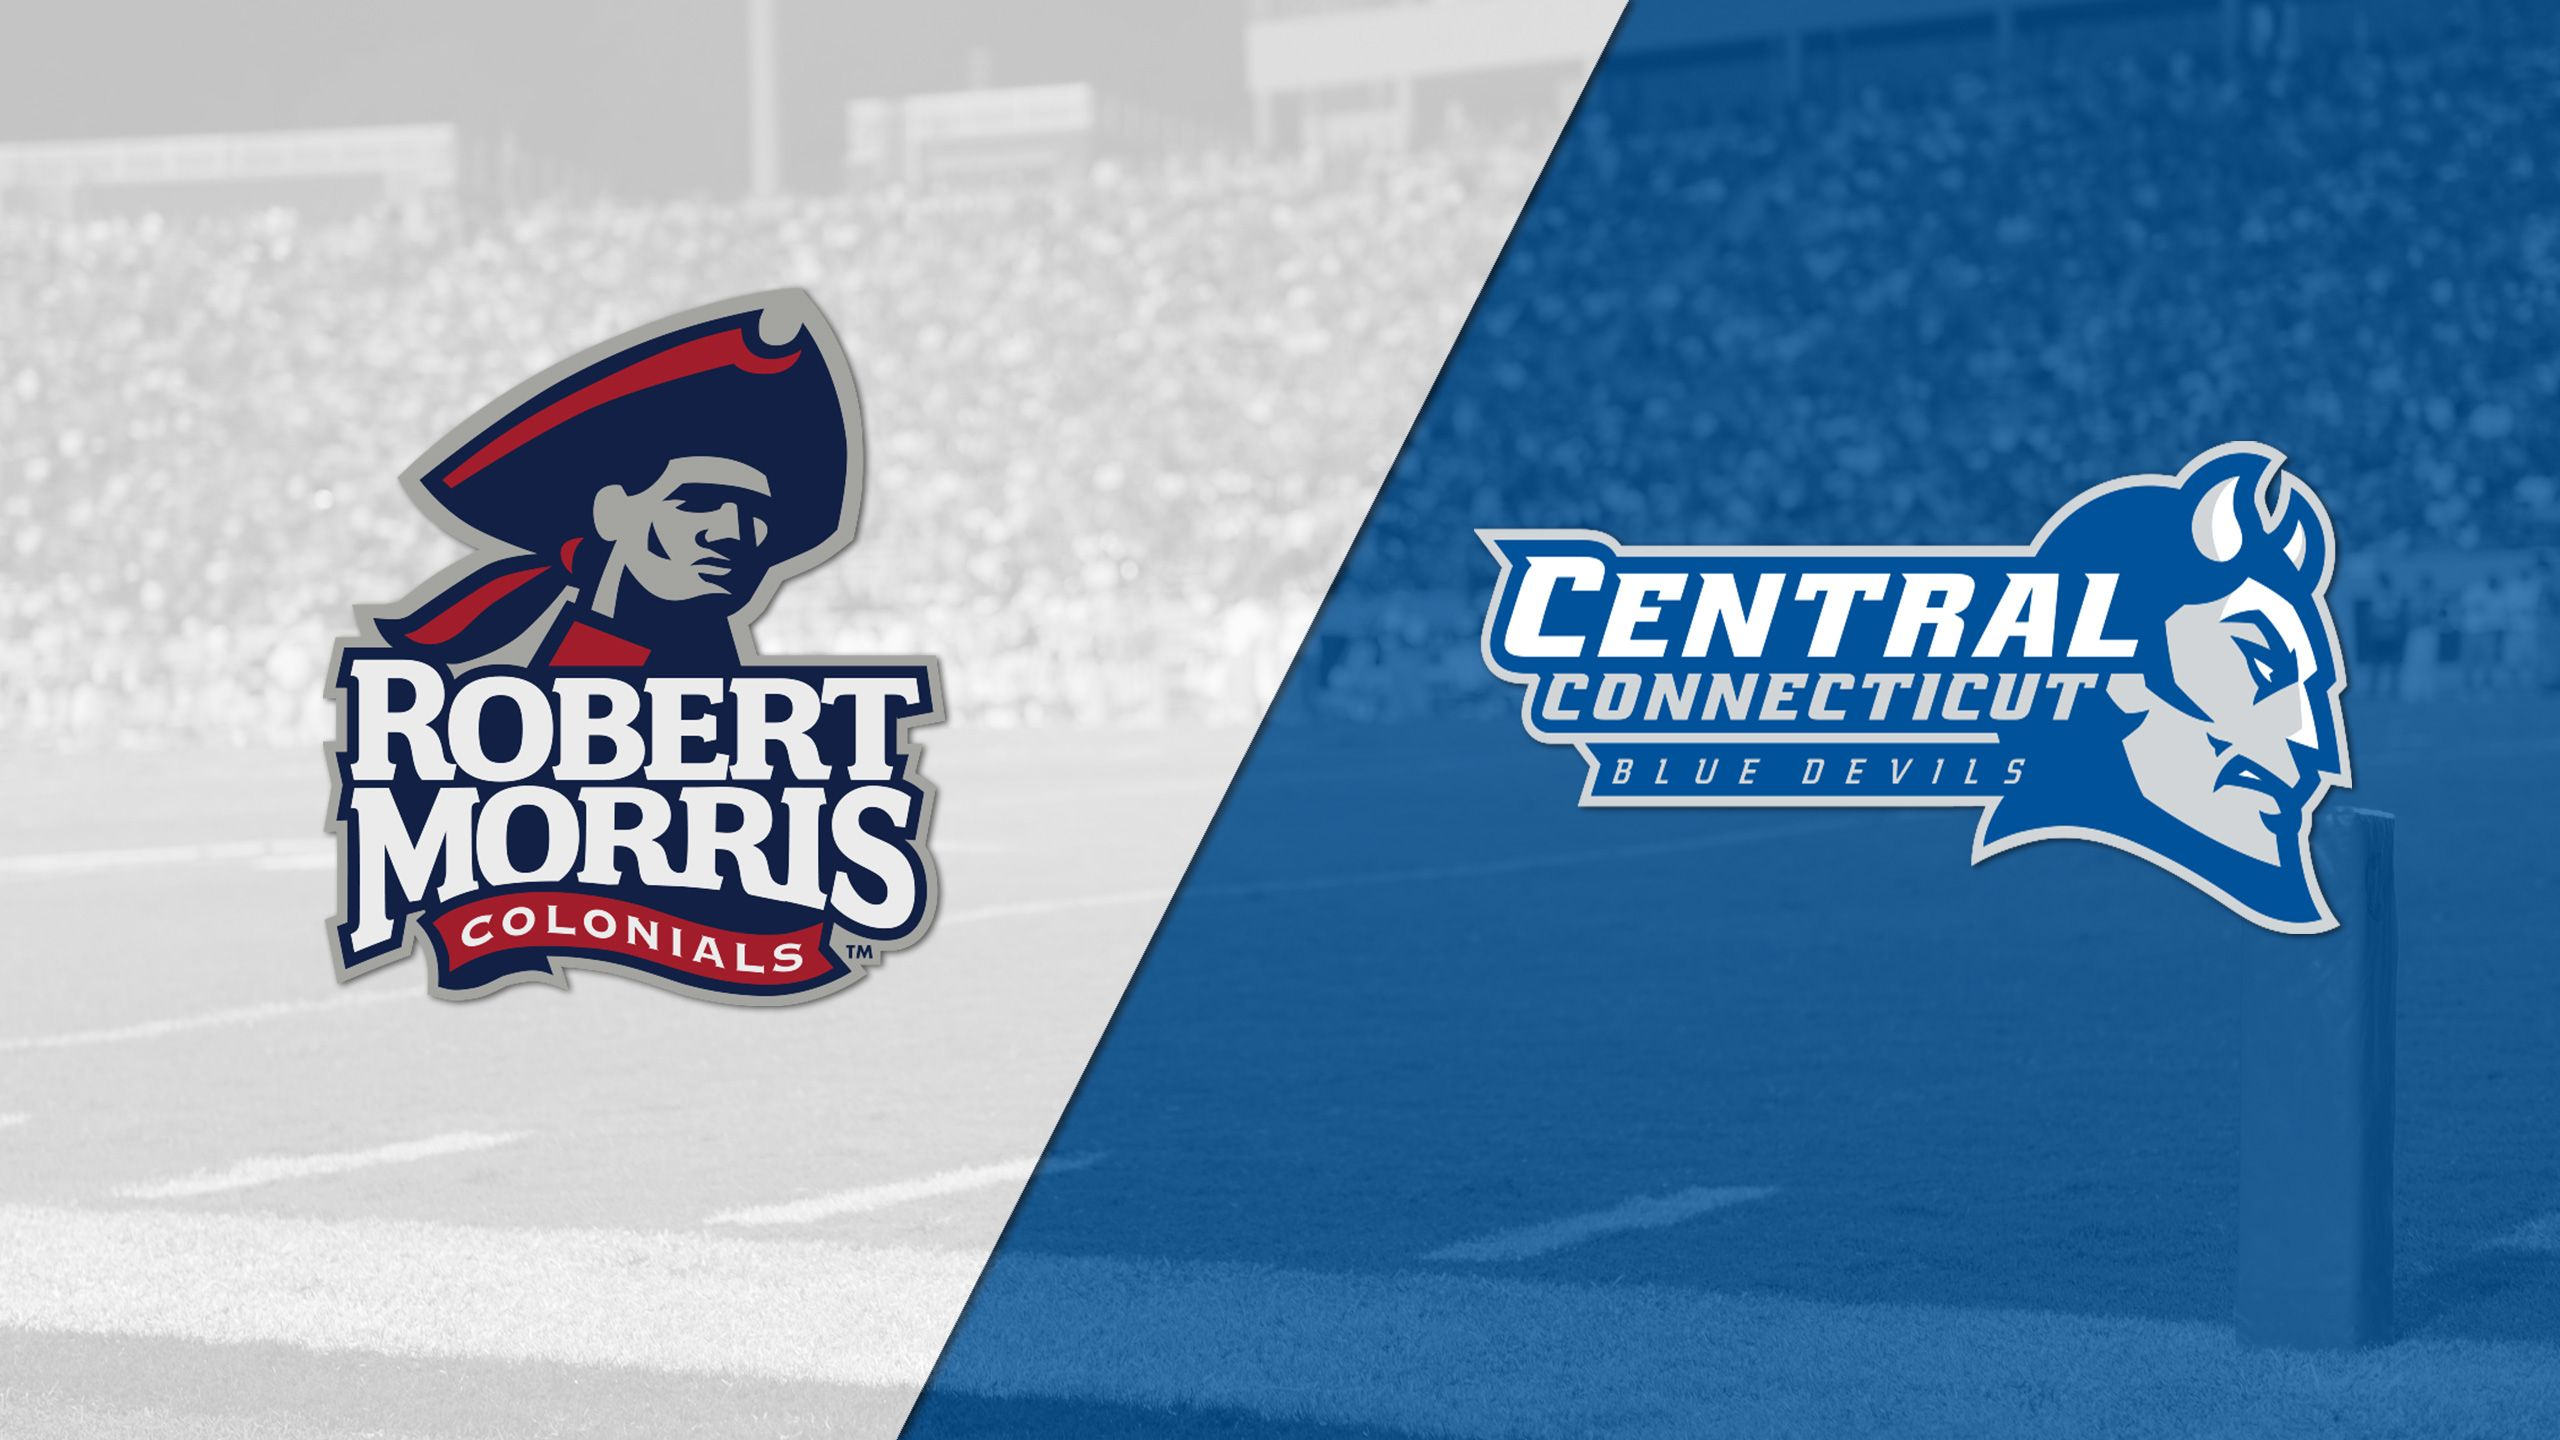 Robert Morris vs. Central Connecticut (Football)